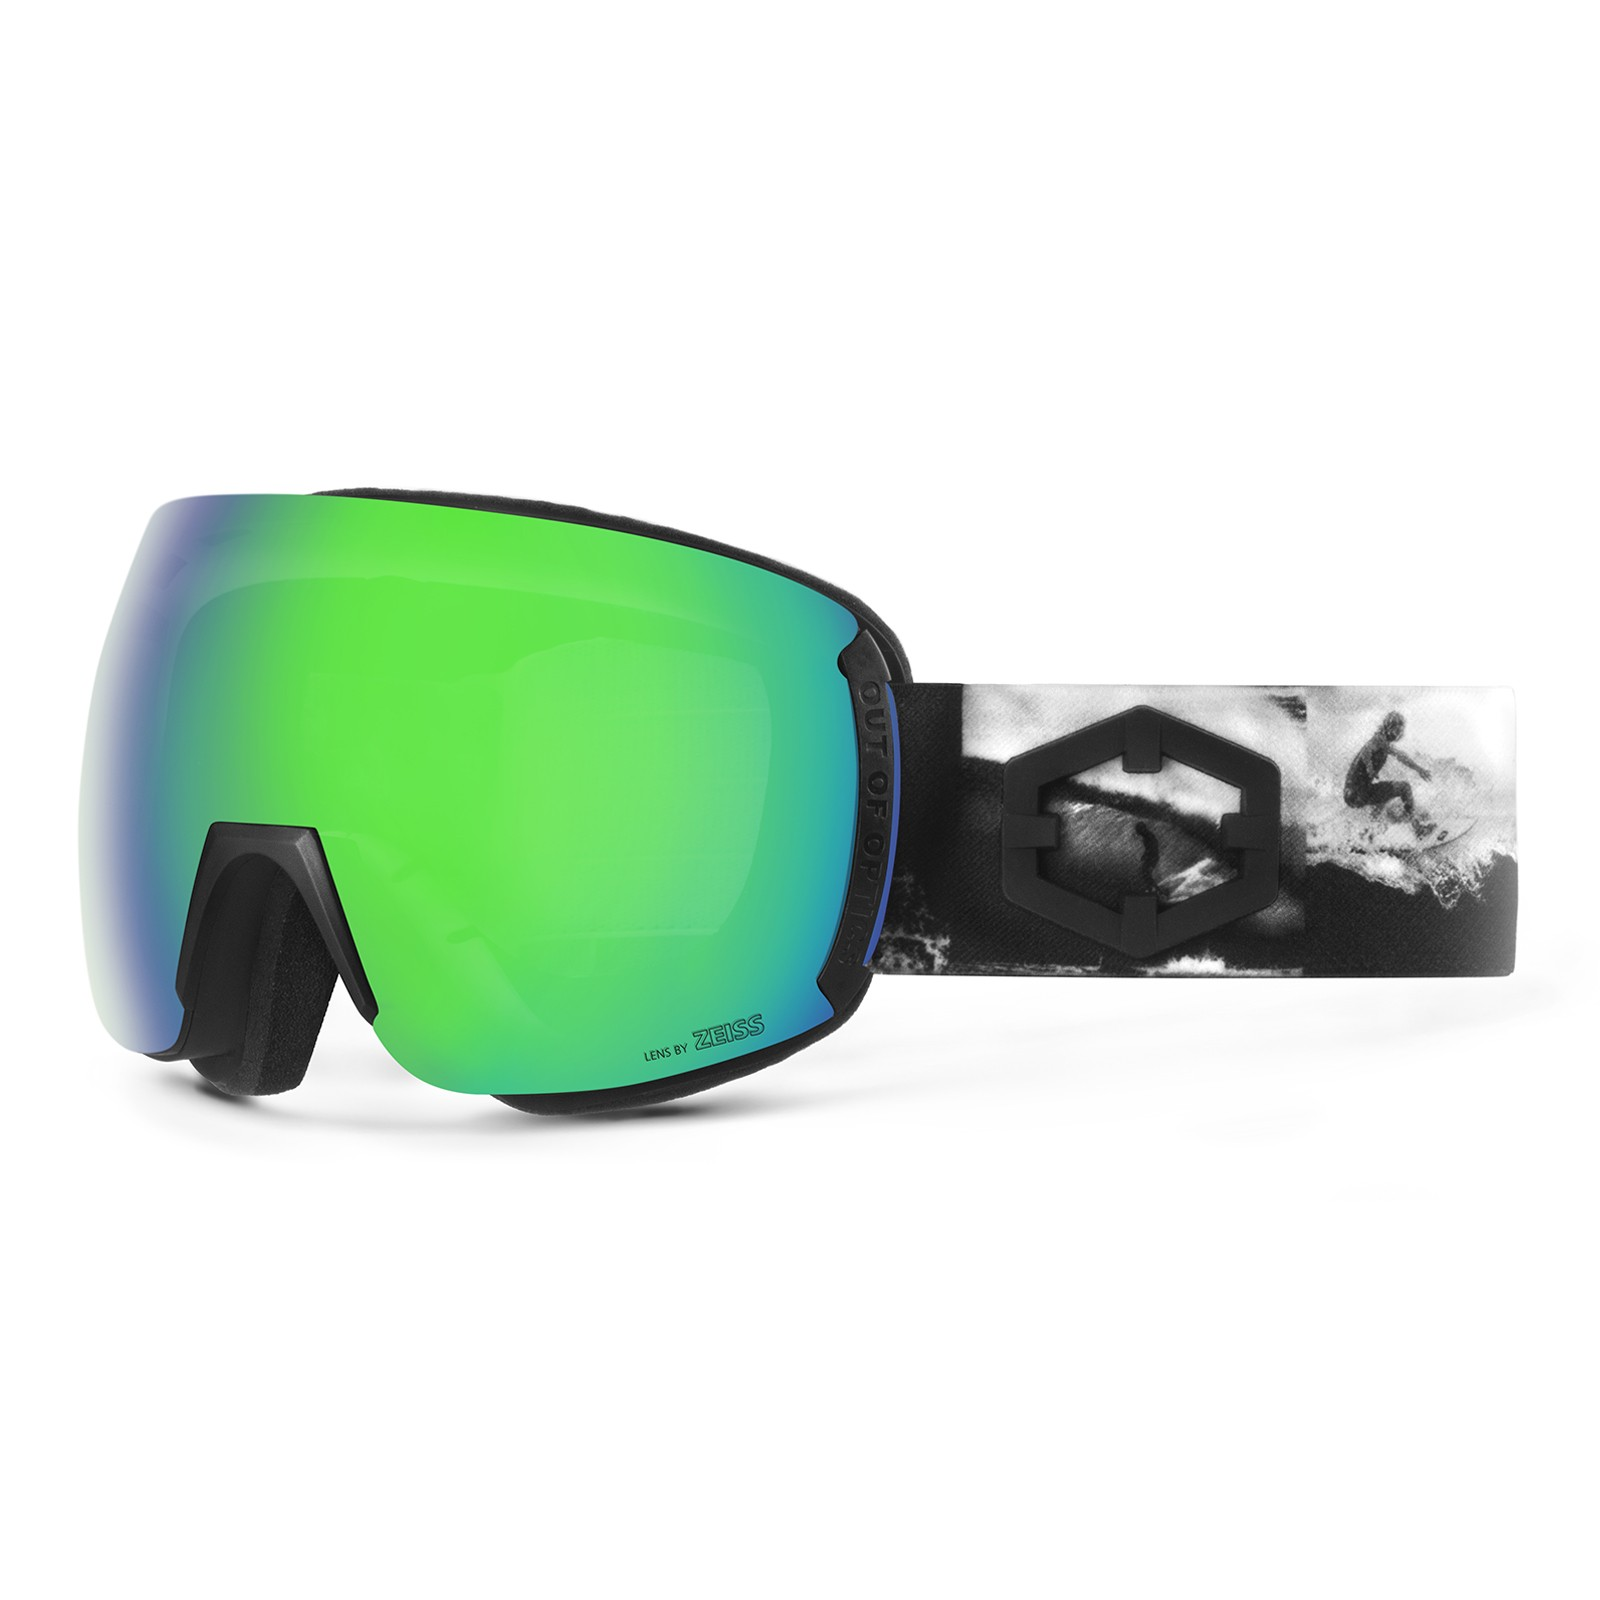 Earth Tube Green mci goggle